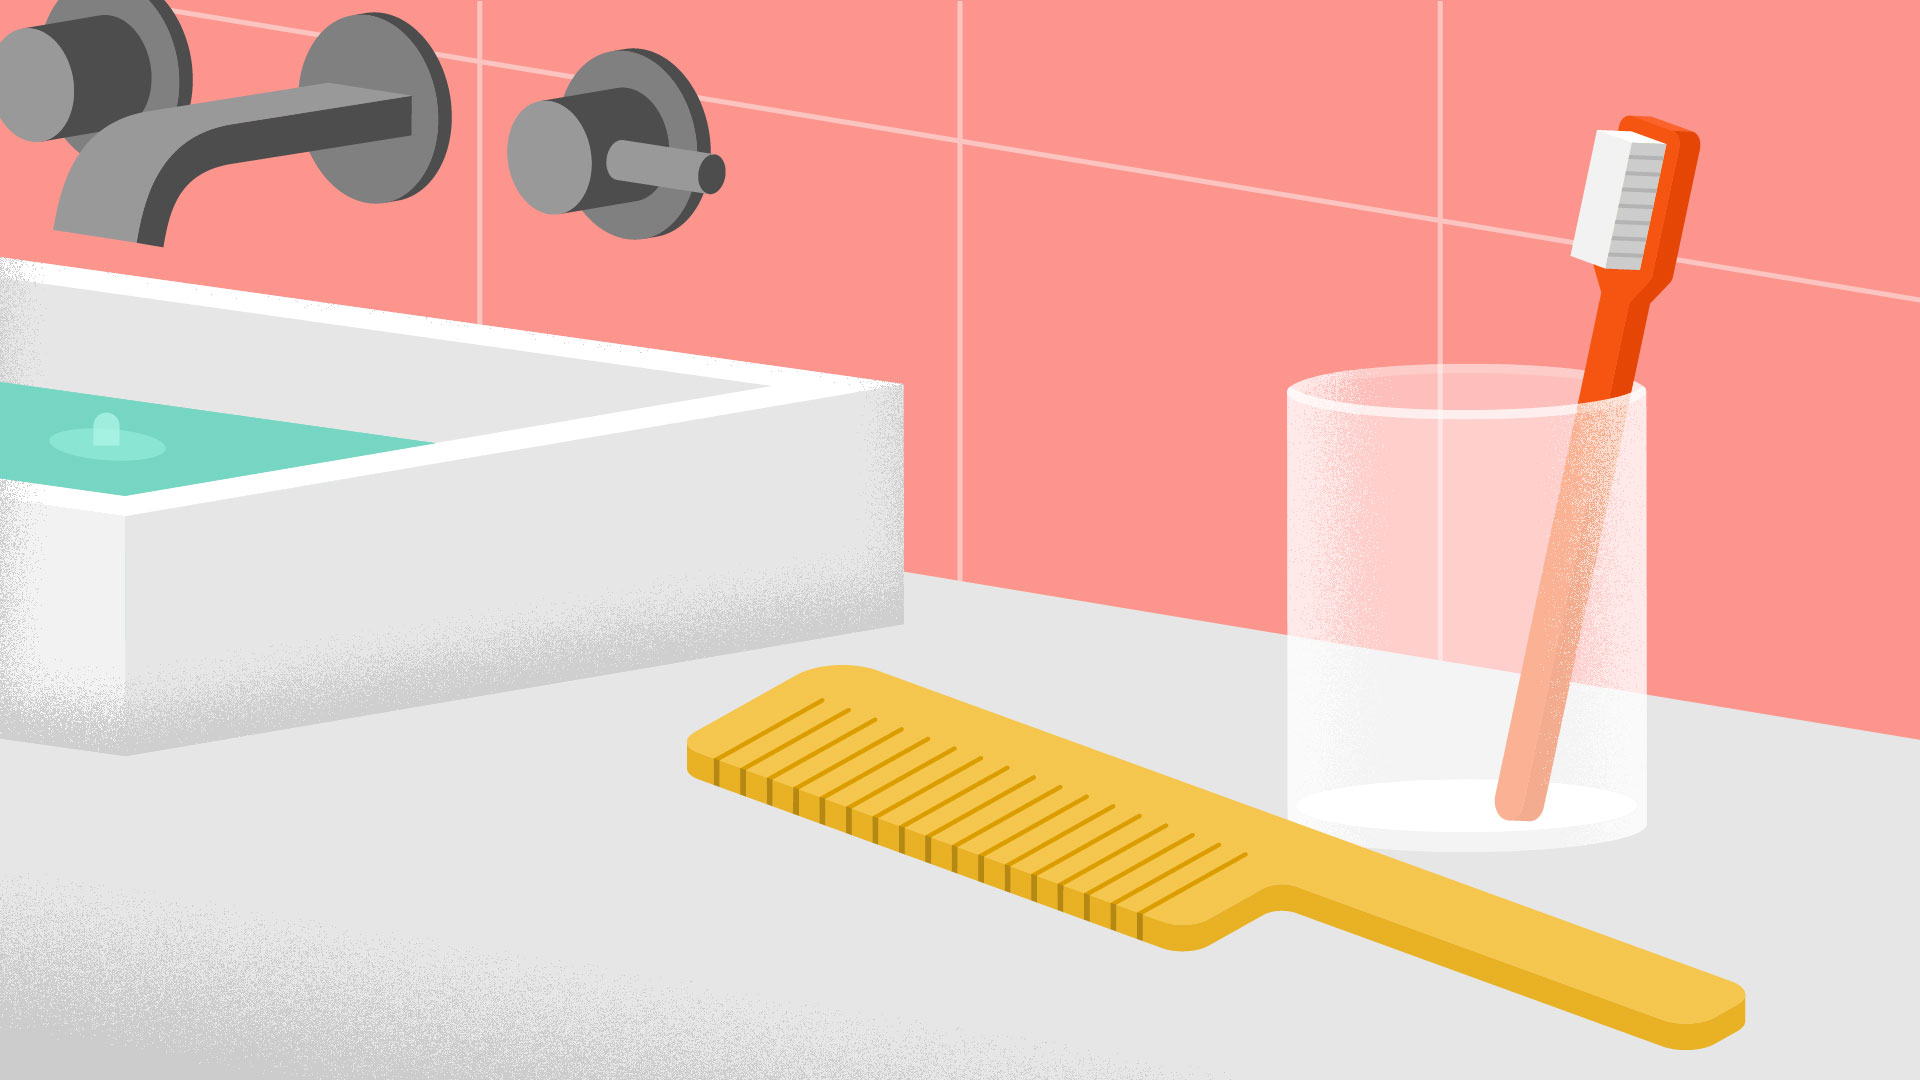 bathroom sink with comb and toothbrush